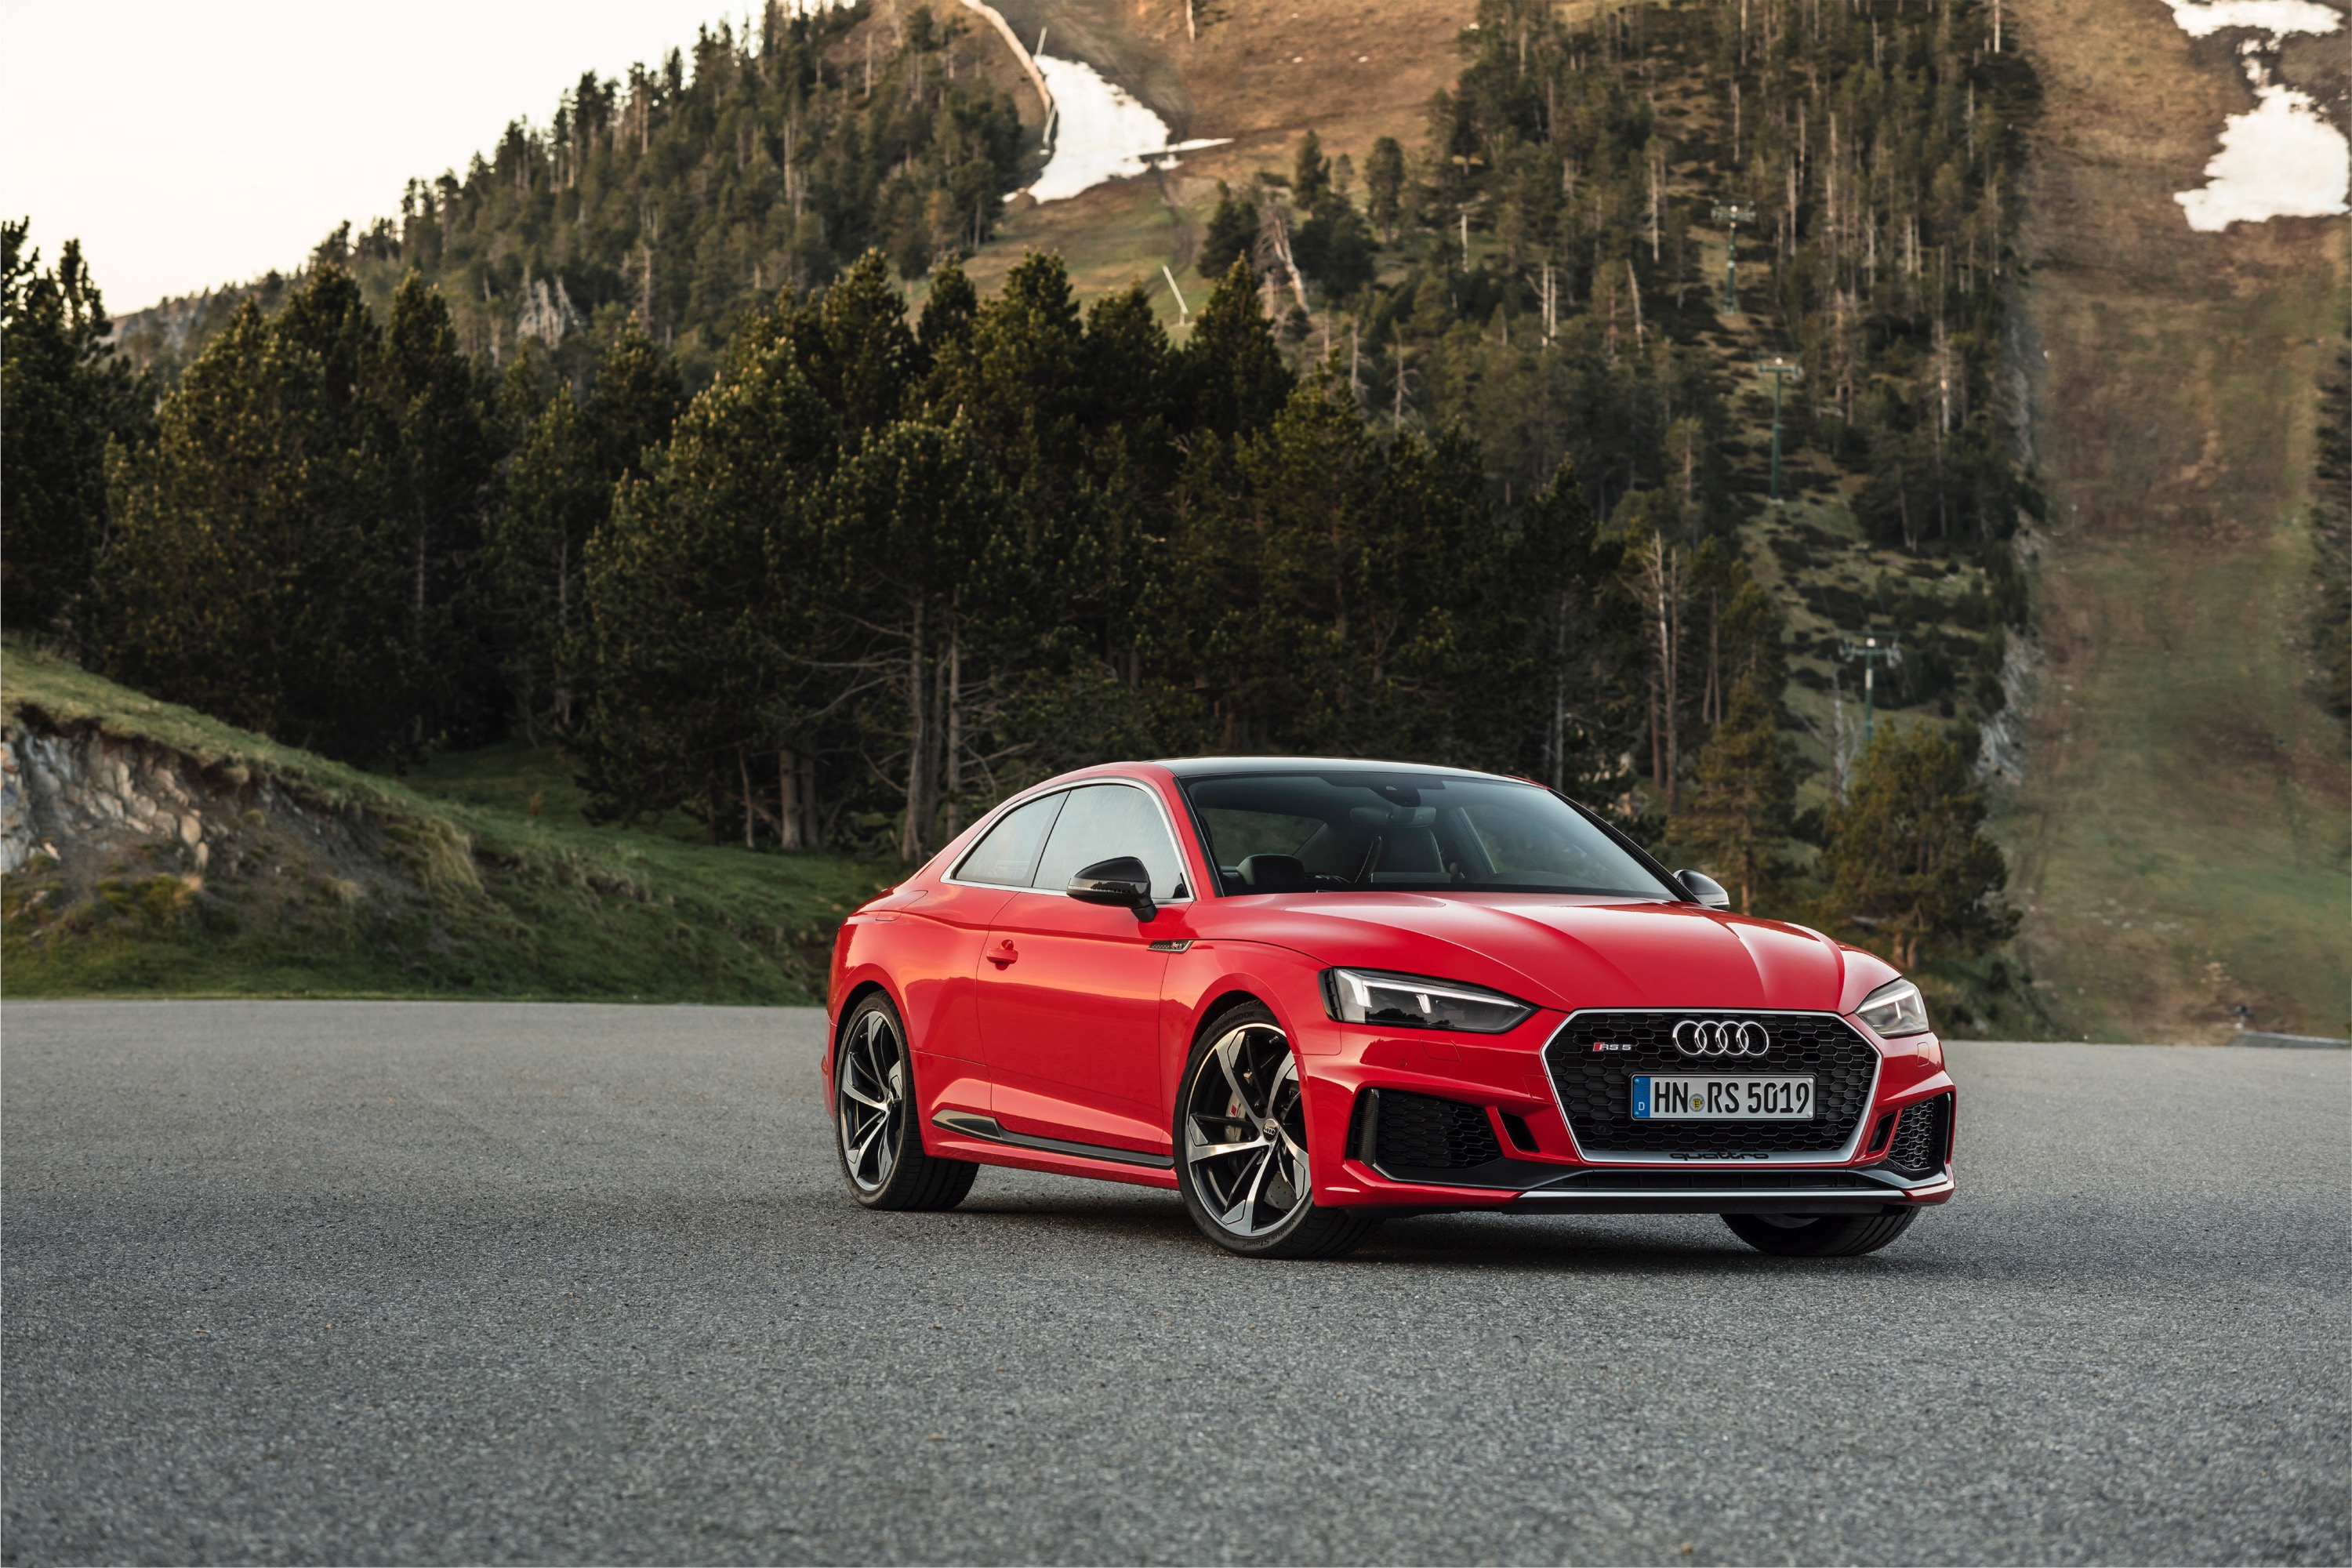 2017 Audi Rs5 Points To Evolutionary Design Language Audi